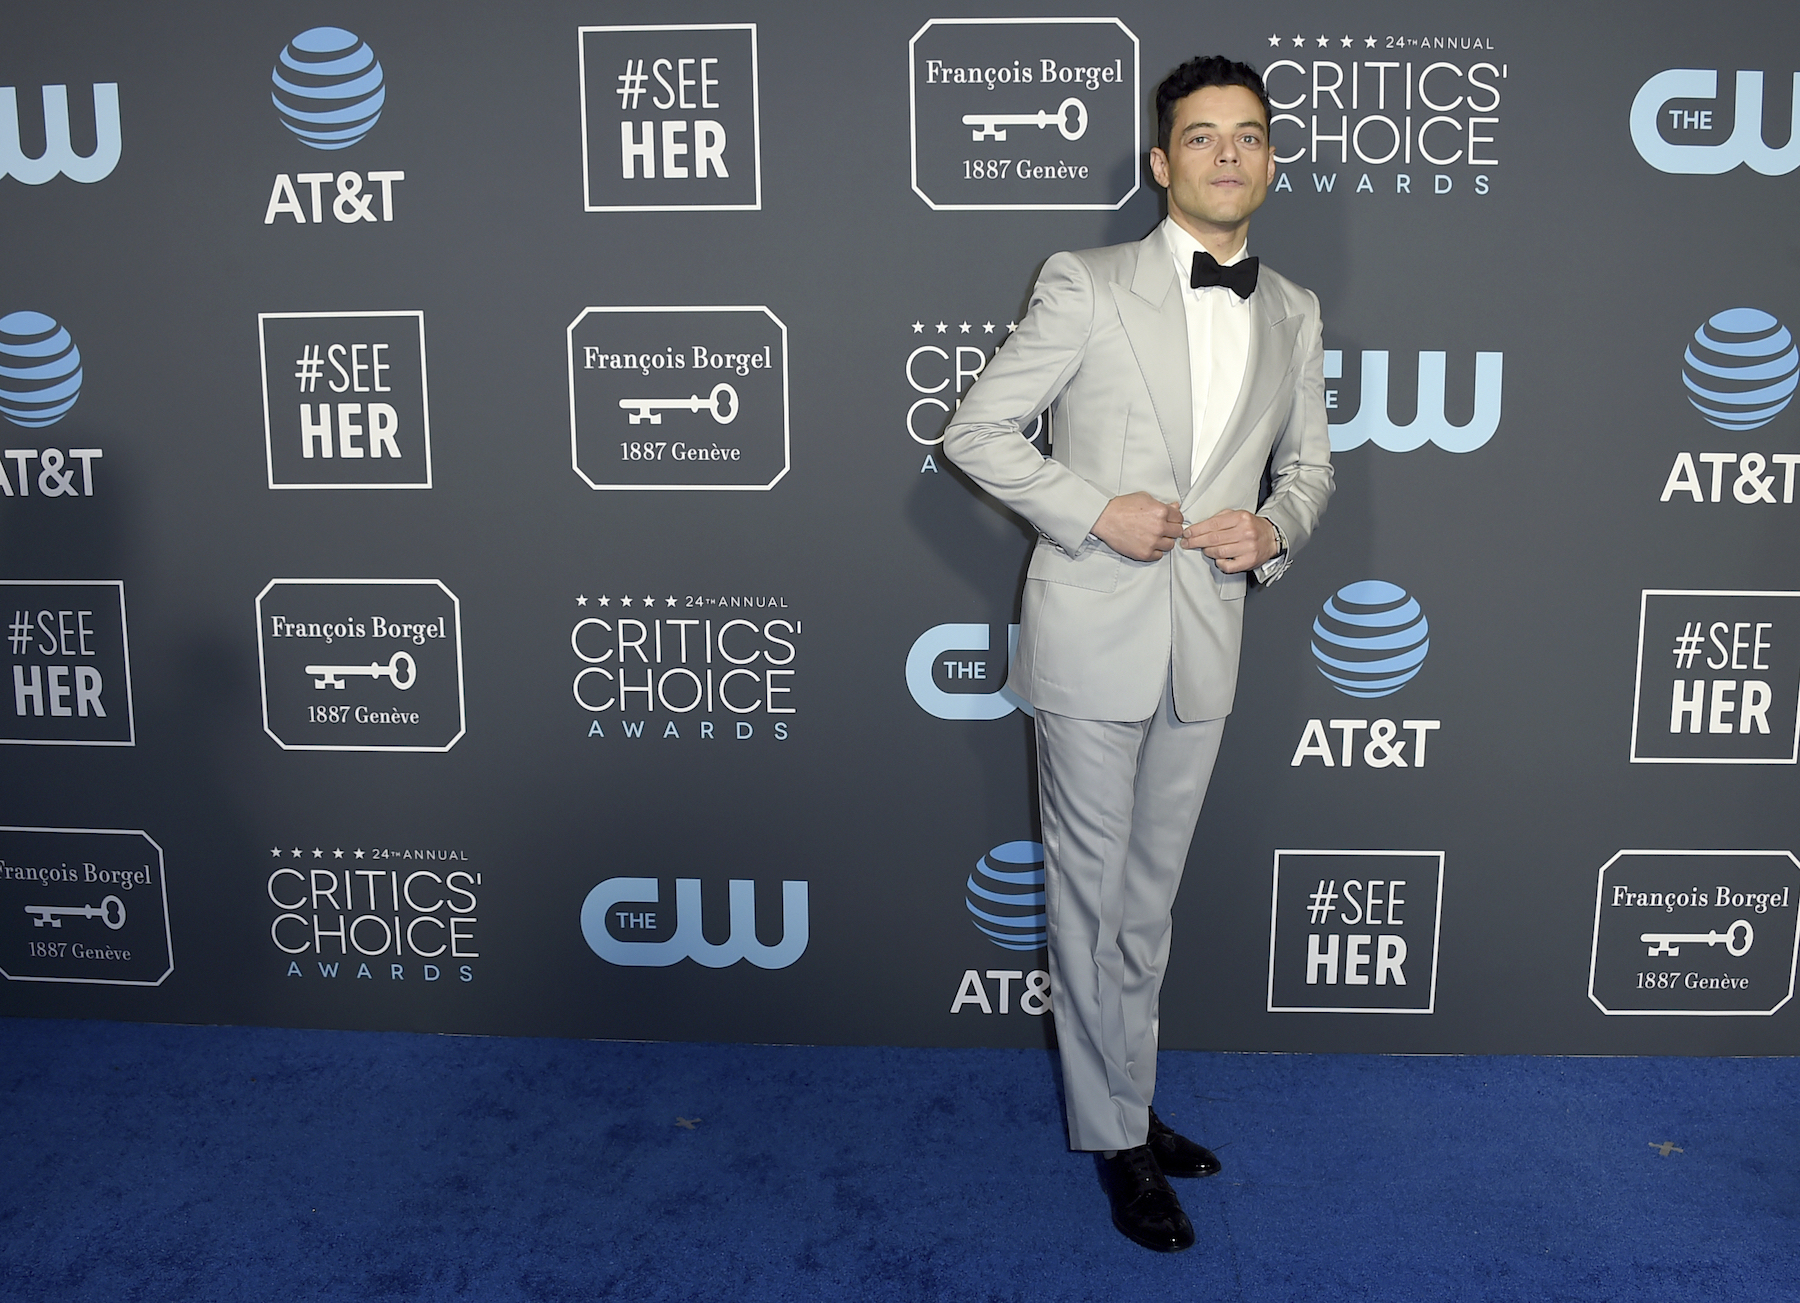 <div class='meta'><div class='origin-logo' data-origin='AP'></div><span class='caption-text' data-credit='Jordan Strauss/Invision/AP'>Rami Malek arrives at the 24th annual Critics' Choice Awards on Sunday, Jan. 13, 2019, at the Barker Hangar in Santa Monica, Calif.</span></div>